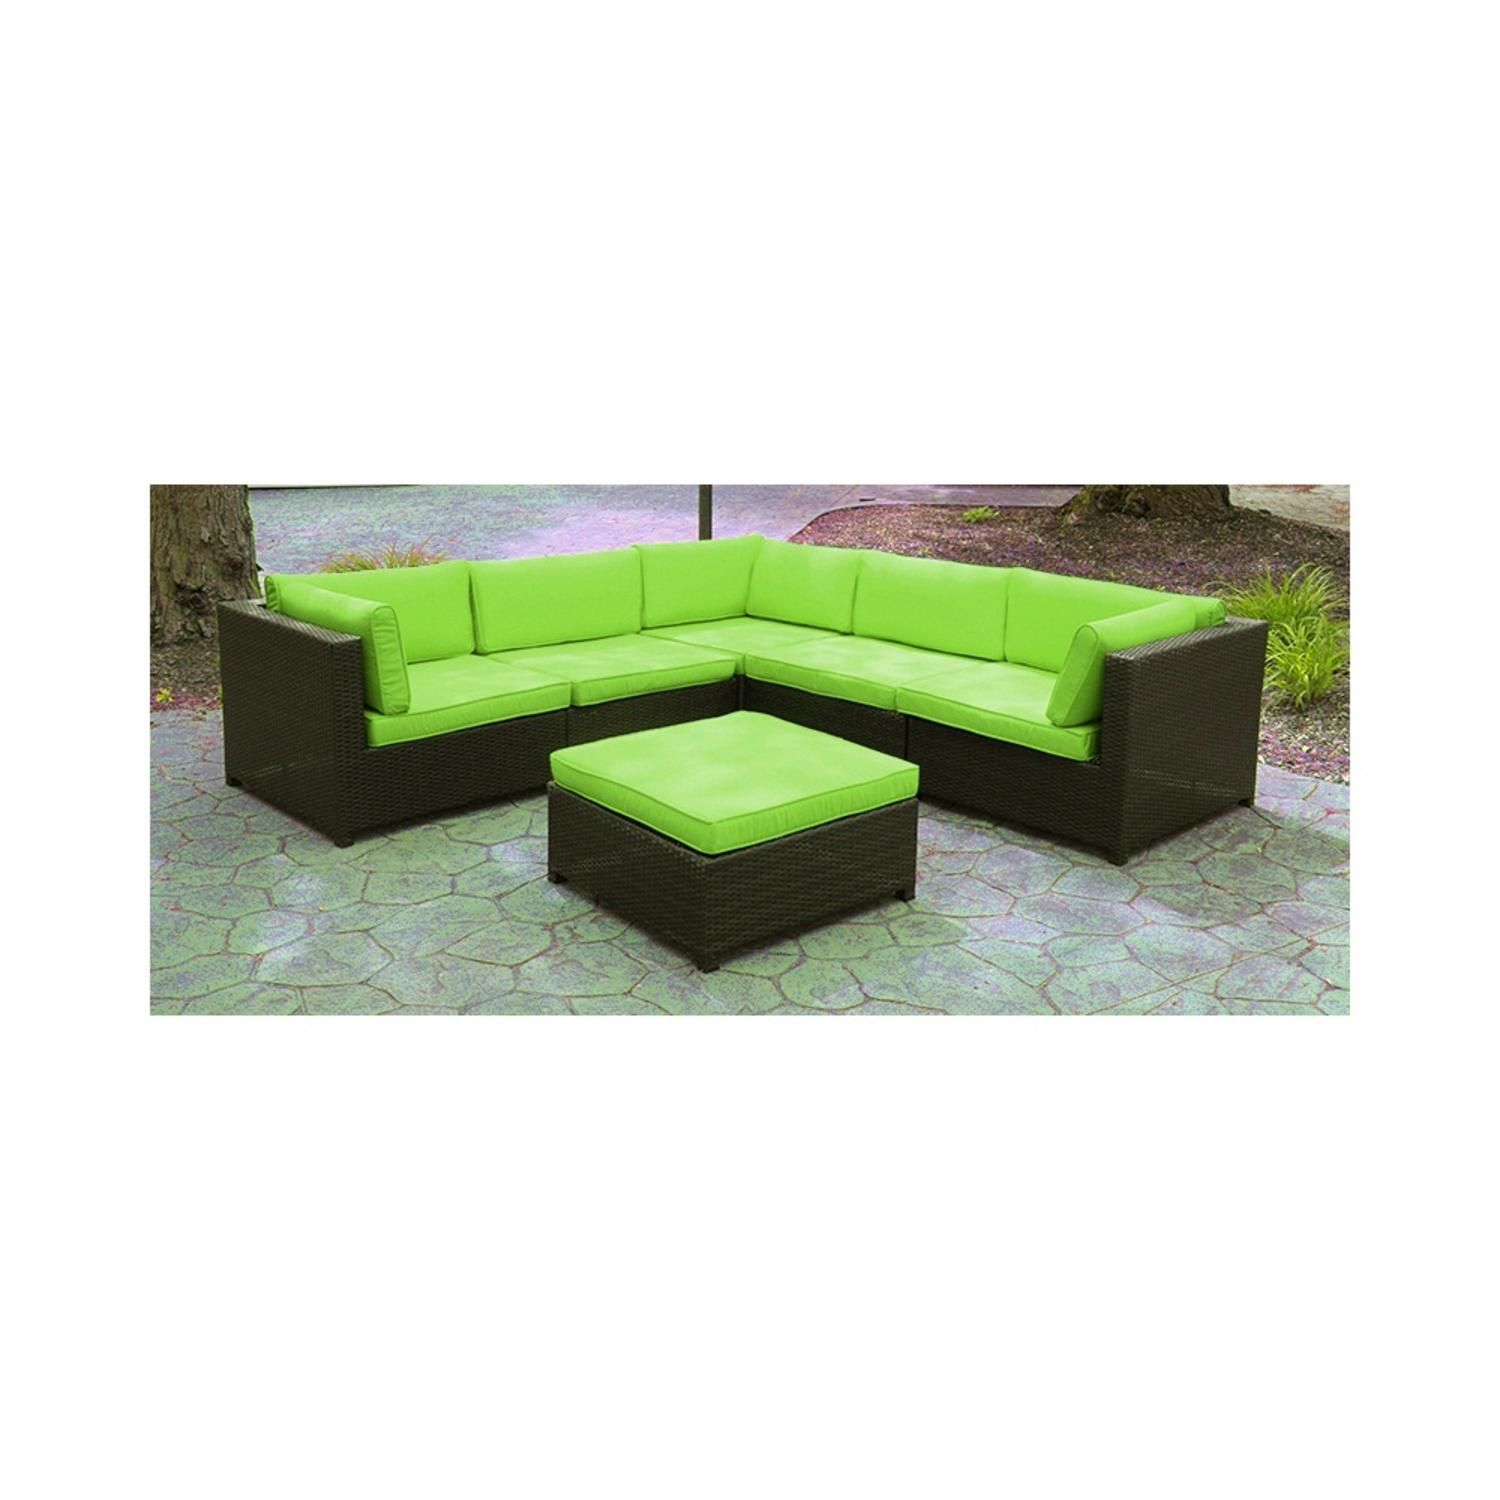 Black Resin Wicker Outdoor Furniture Sectional Sofa Set Lime